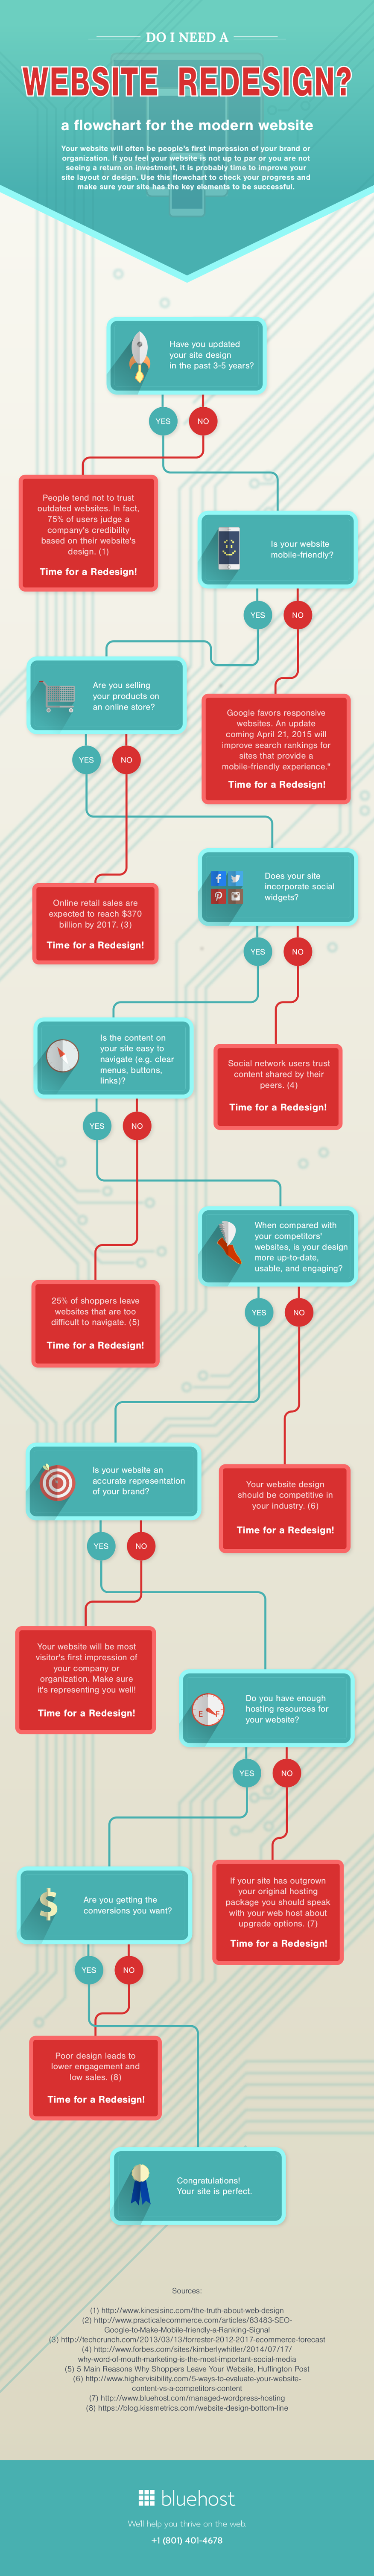 is-it-time-for-a-website-redesign-infographic